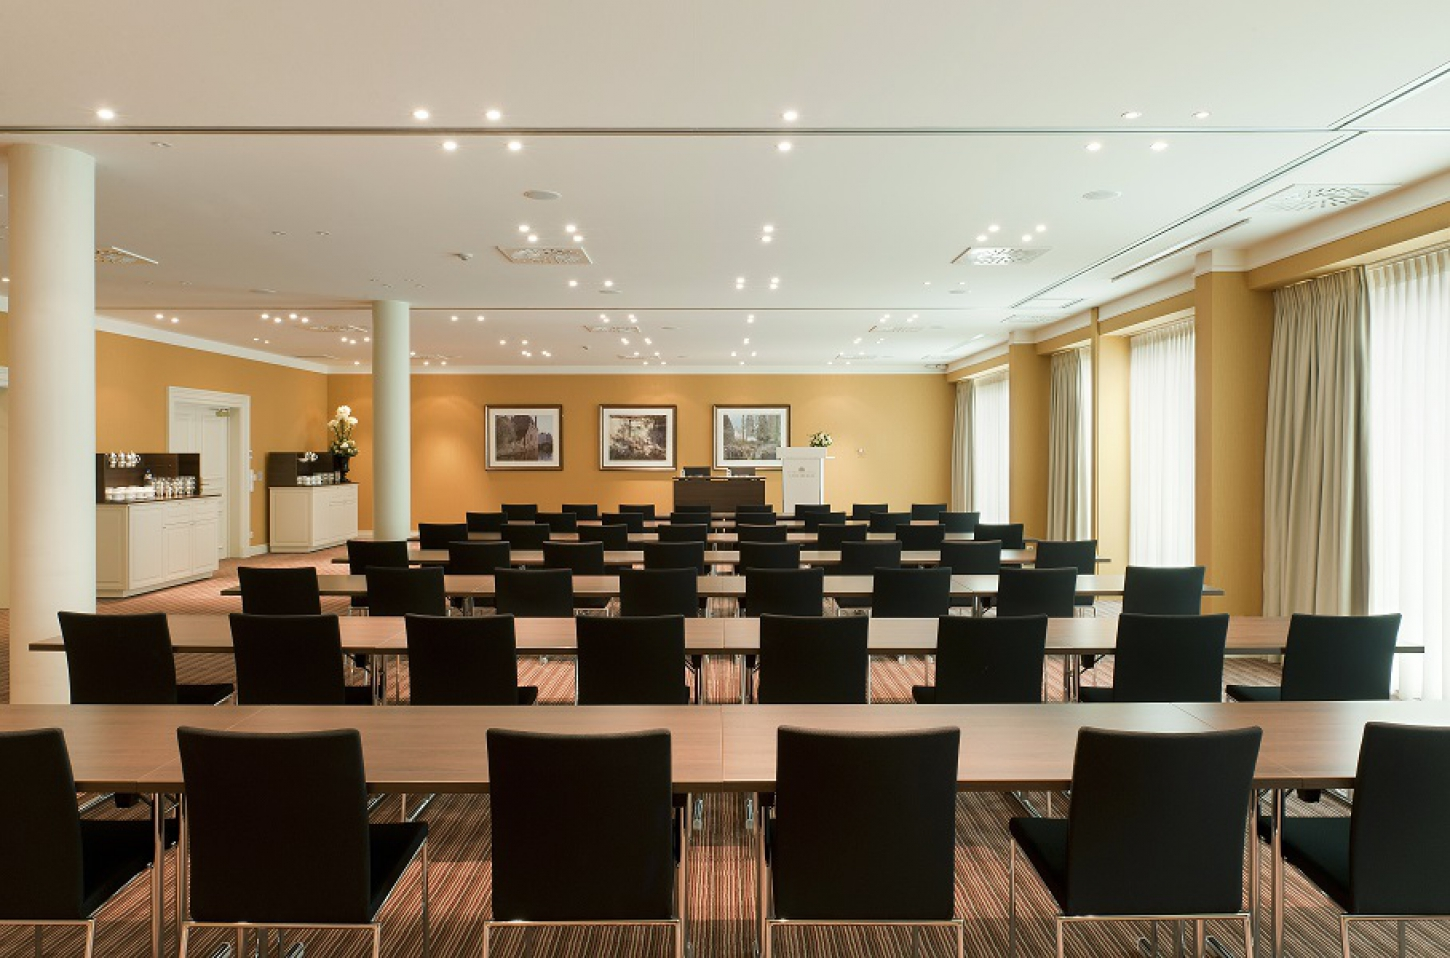 Meeting rooms for residential seminars